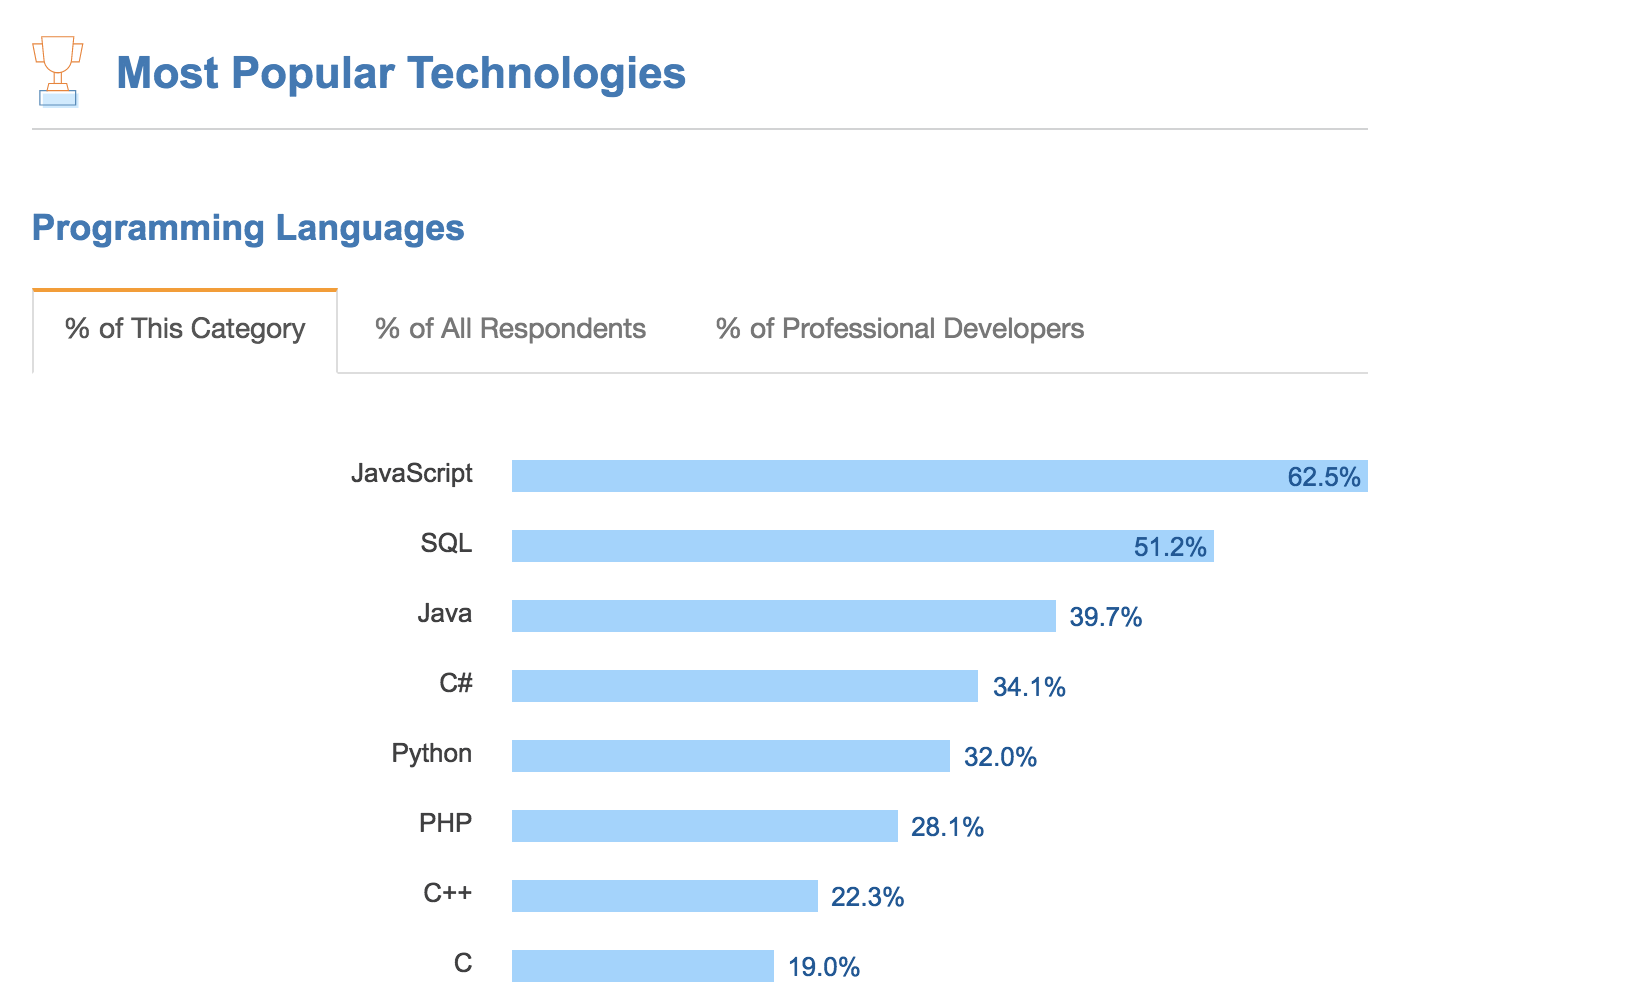 Want to be a Web Developer? Learn Node js not PHP - zero to